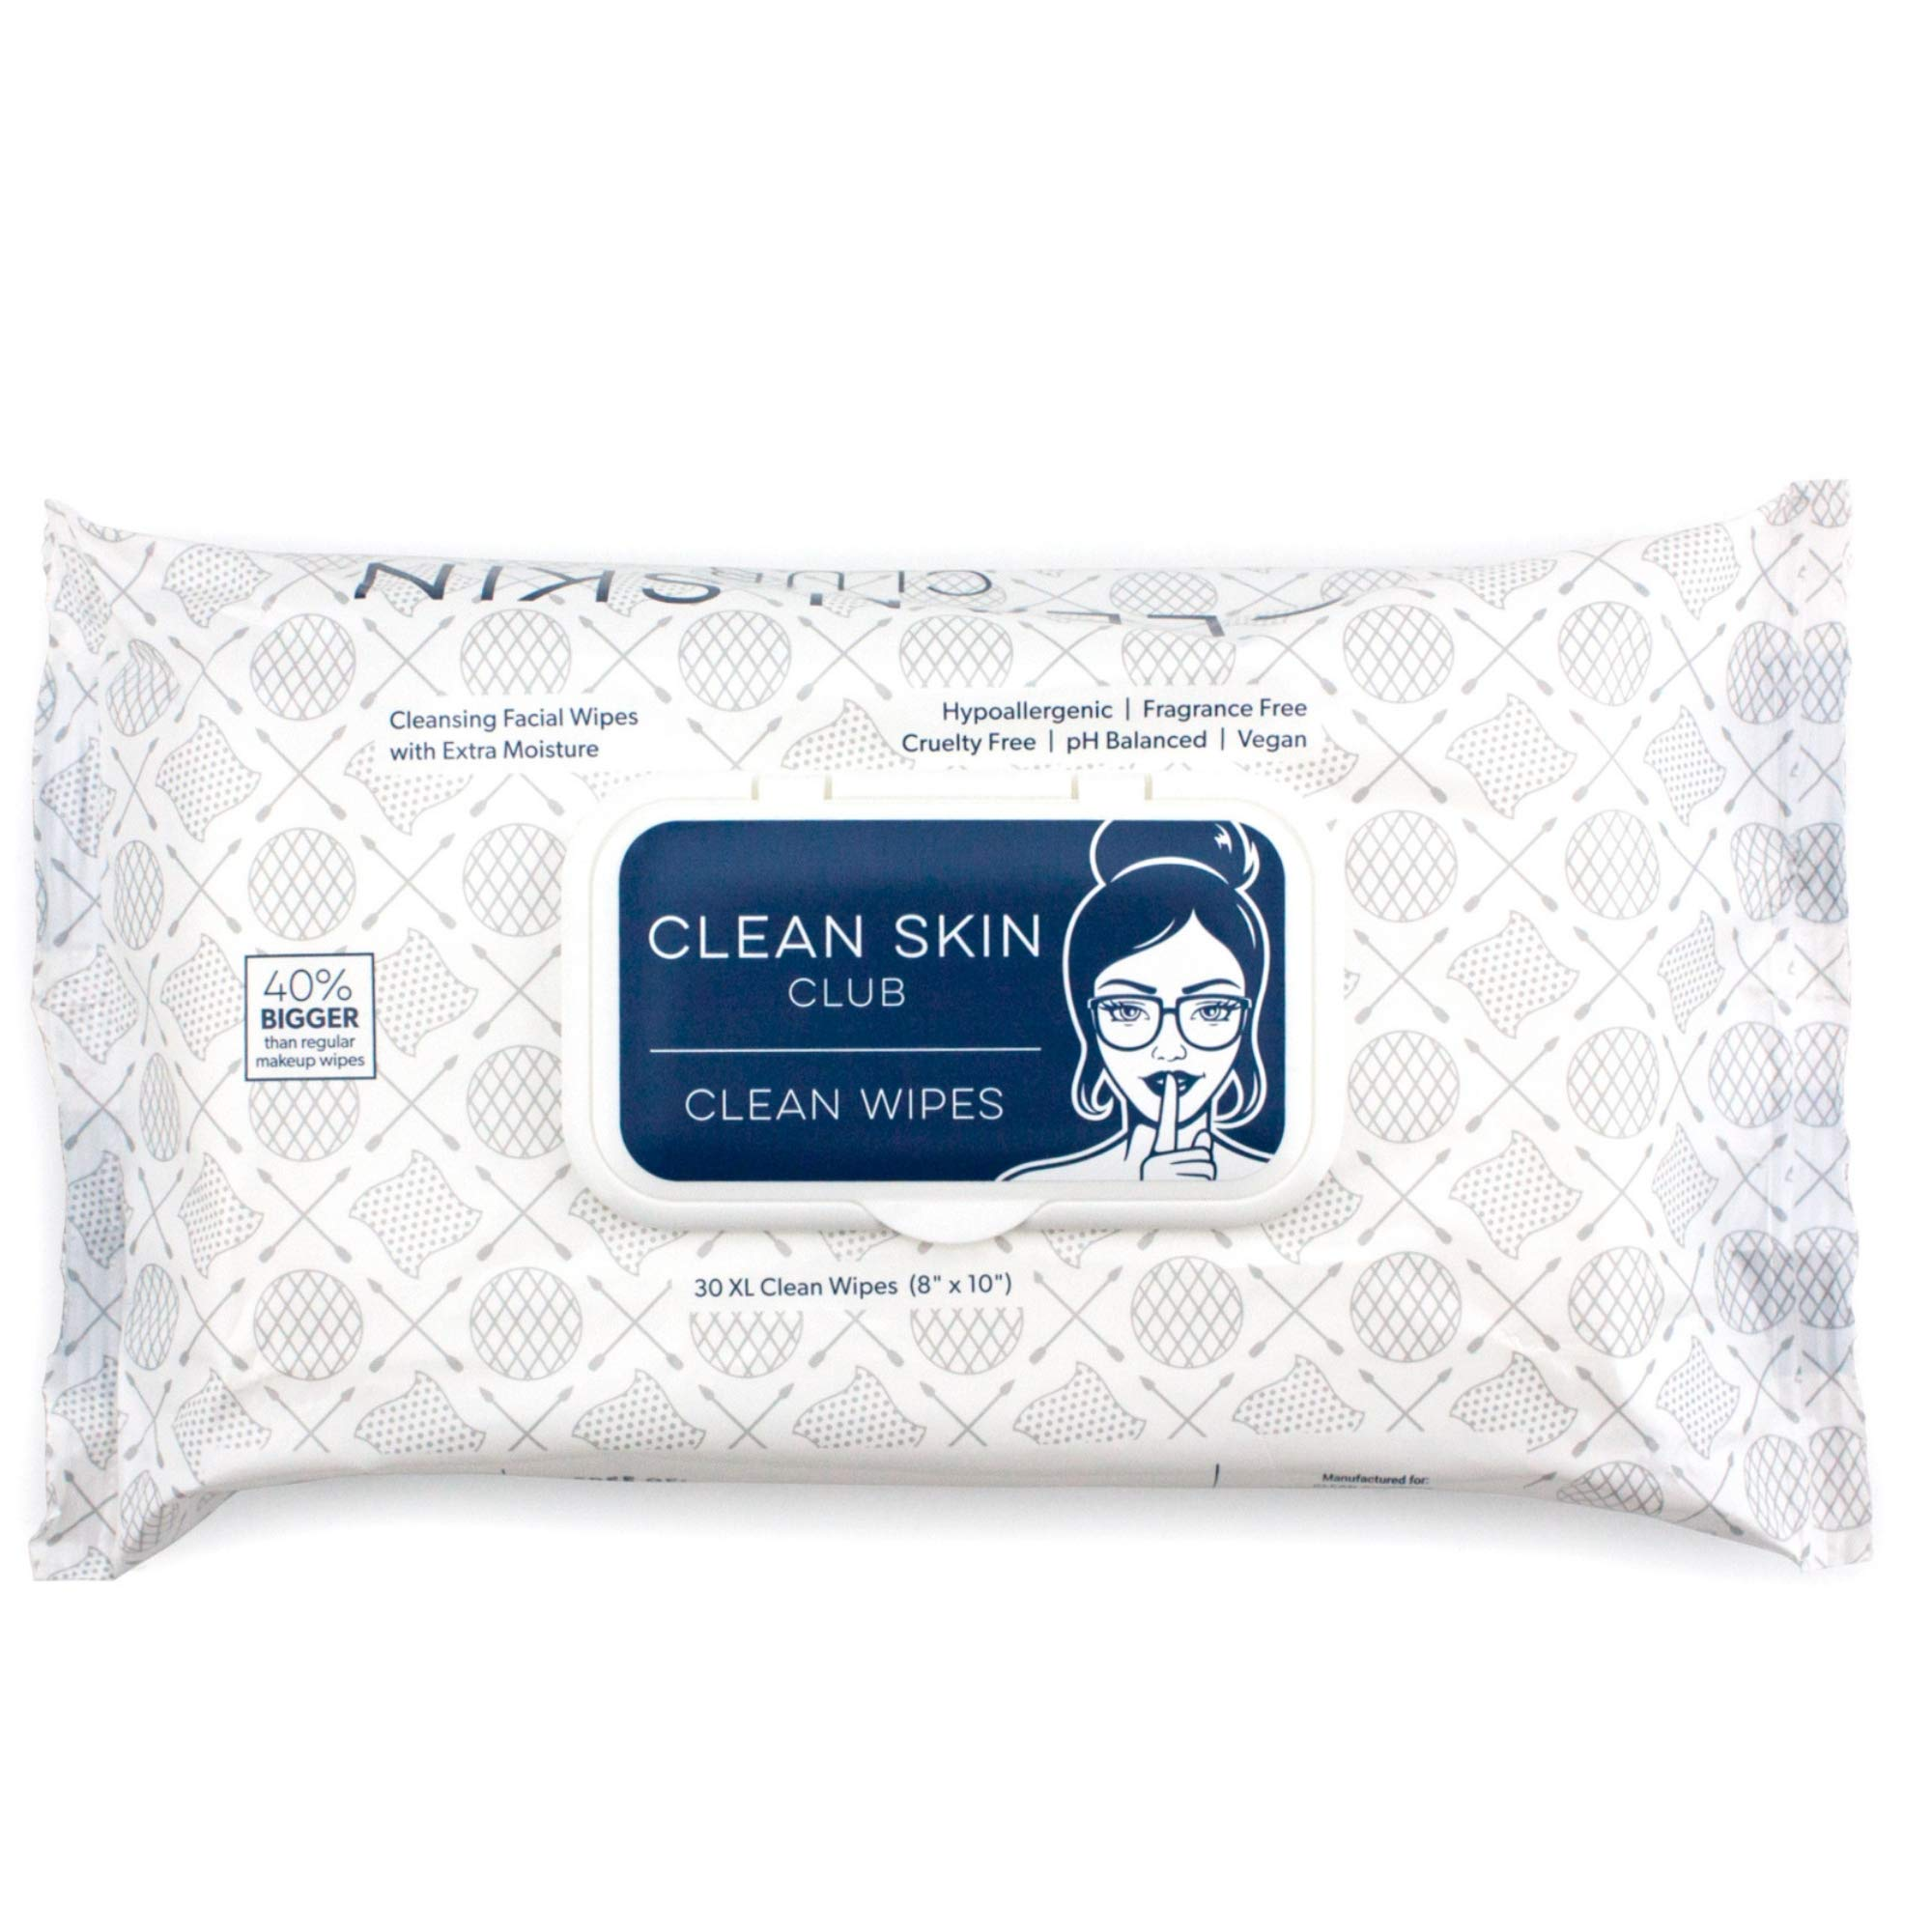 Clean Skin Club - XL Clean Wipes | Extra Moist Makeup Removing Towelettes | 30 Count | Facial Cleansing Cloth | Cruelty Free & Vegan | Fragrance Free | NO Alcohol or Chemicals | GMO & Paraben Free